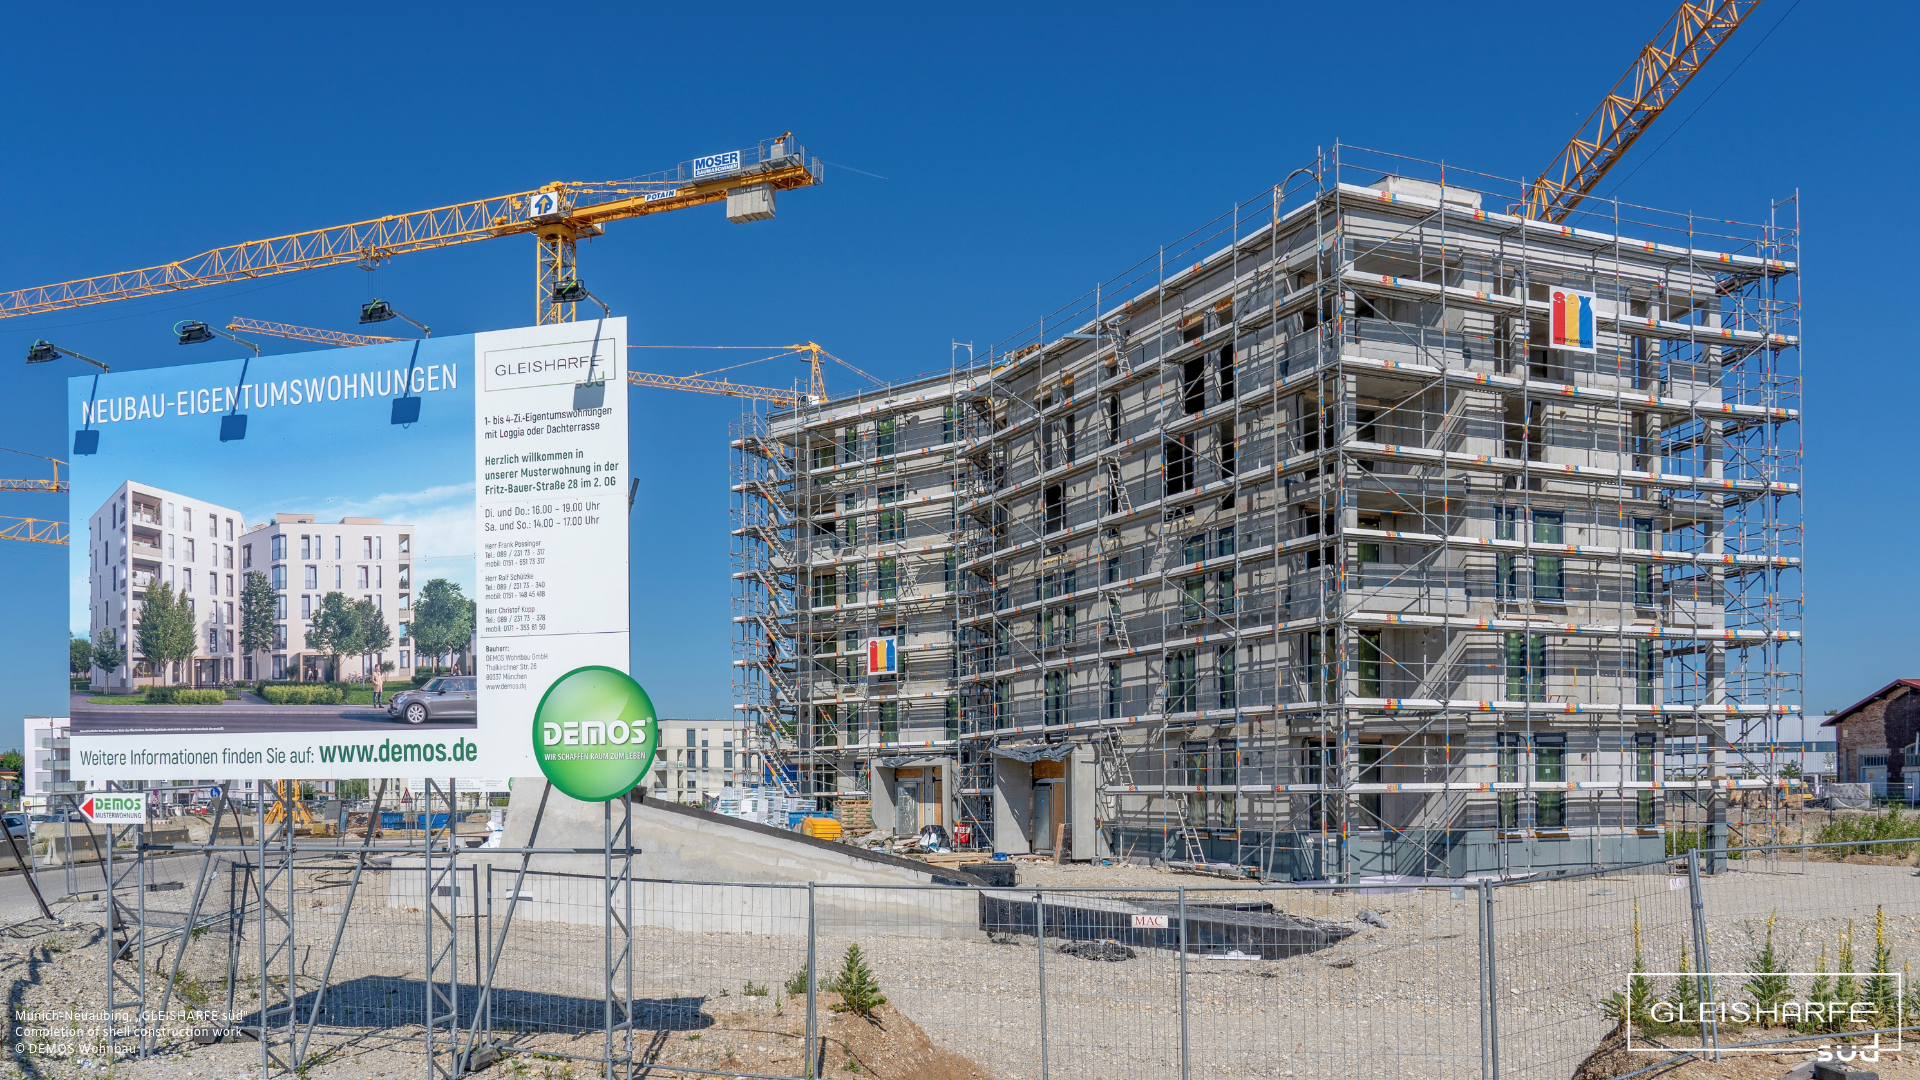 'GLEISHARFE süd' in Neuaubing: Completion of shell construction work